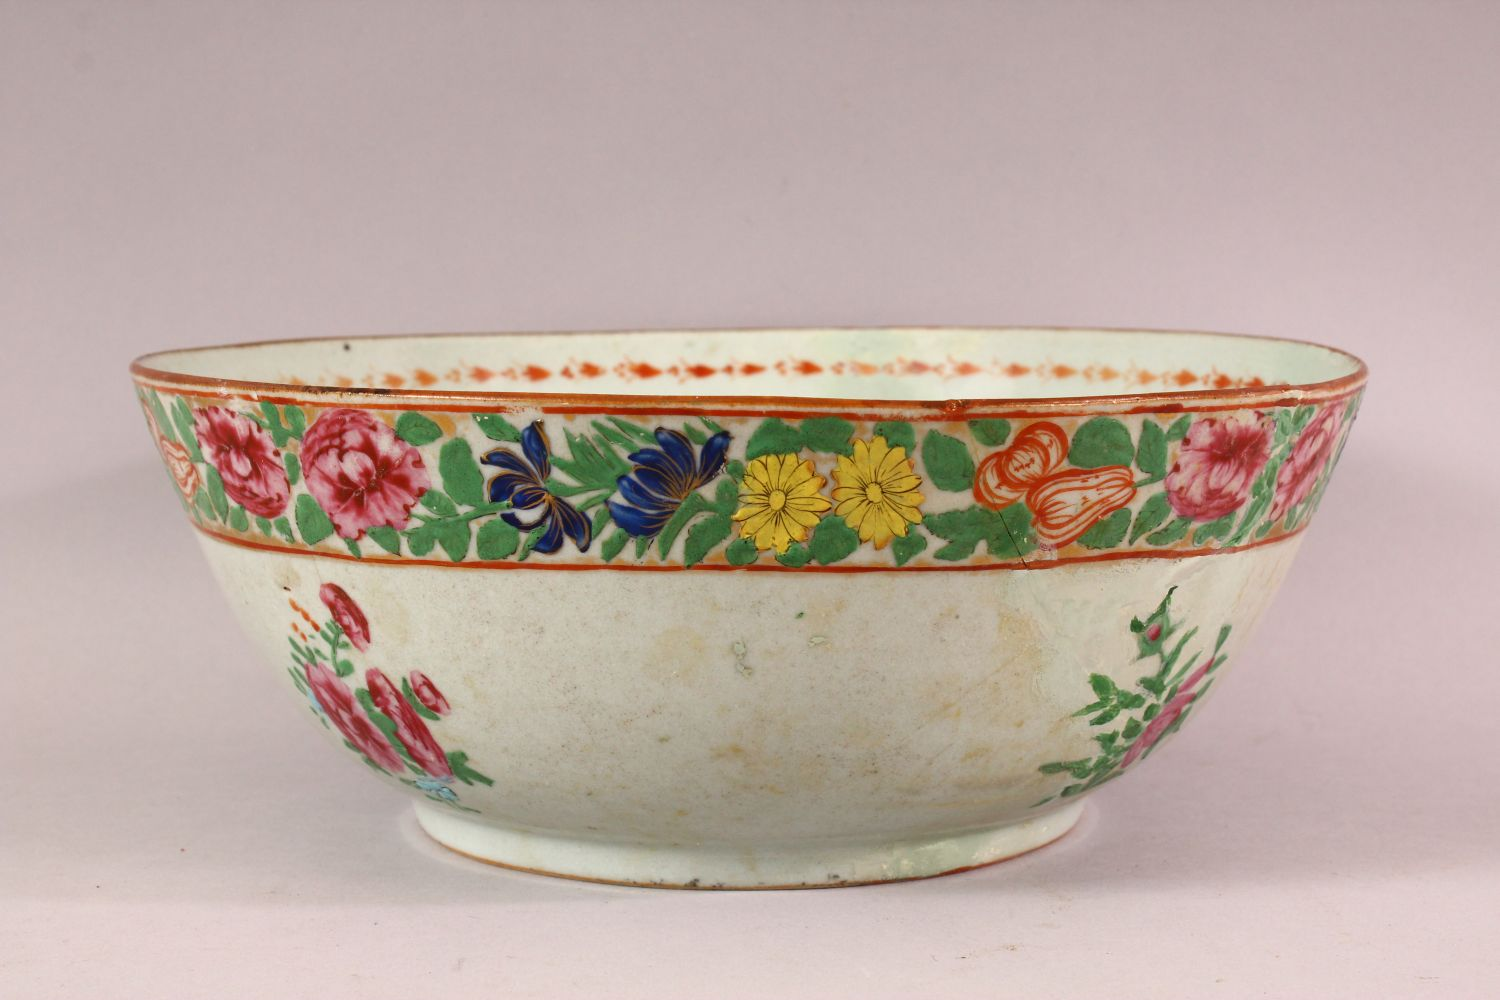 TWO 18TH / 19TH CENTURY CHINESE FAMILLE ROSE PORCELAIN BOWLS, each decorated with bands of flora, ( - Image 3 of 5